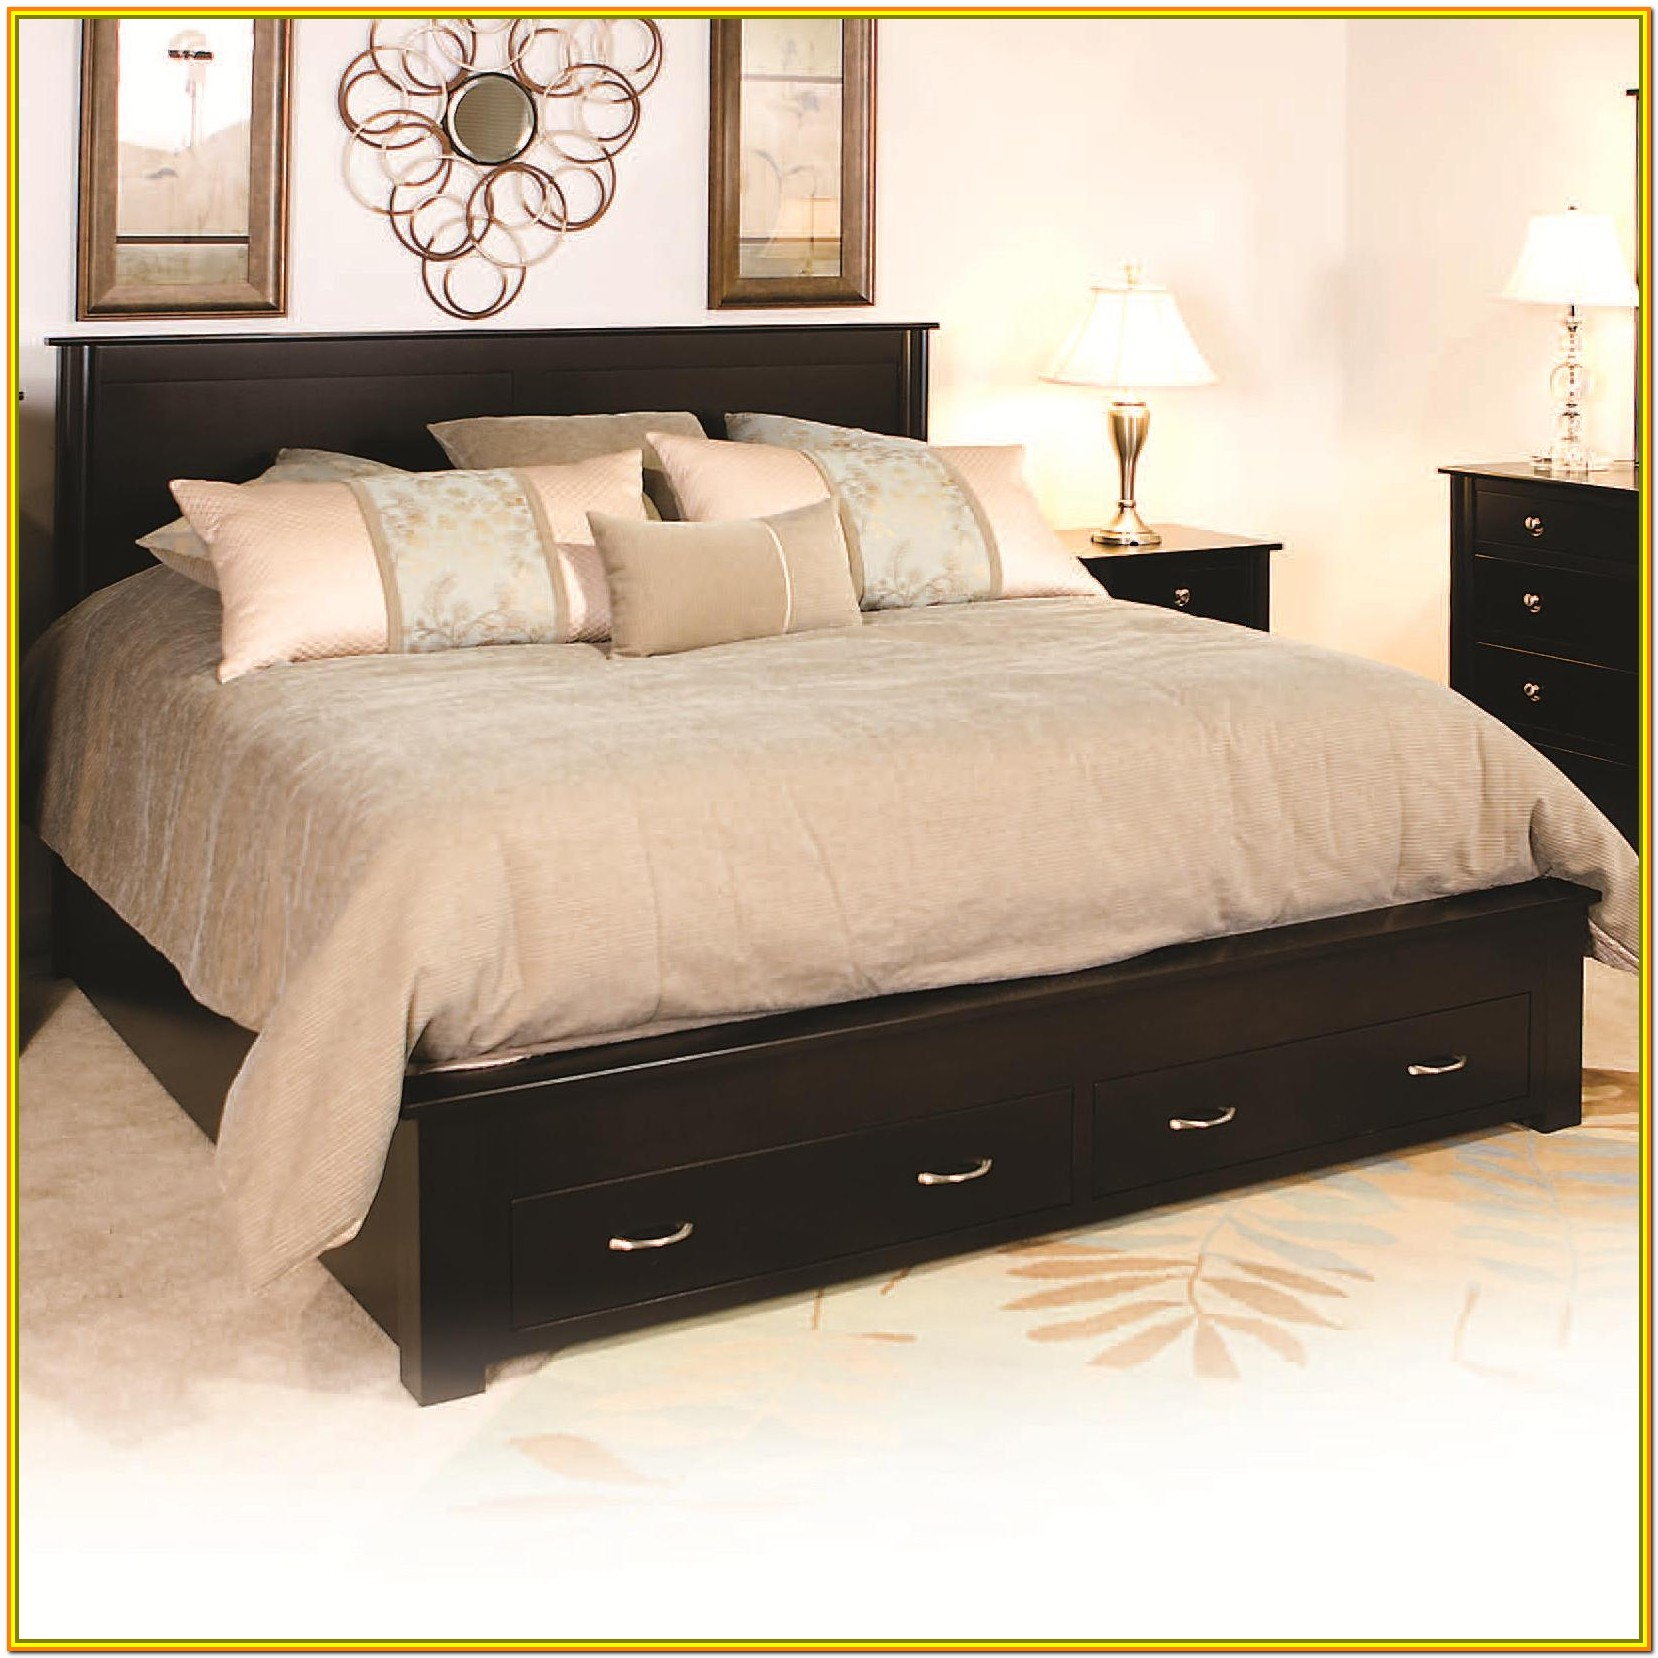 Queen Bed Frame With Drawers Under